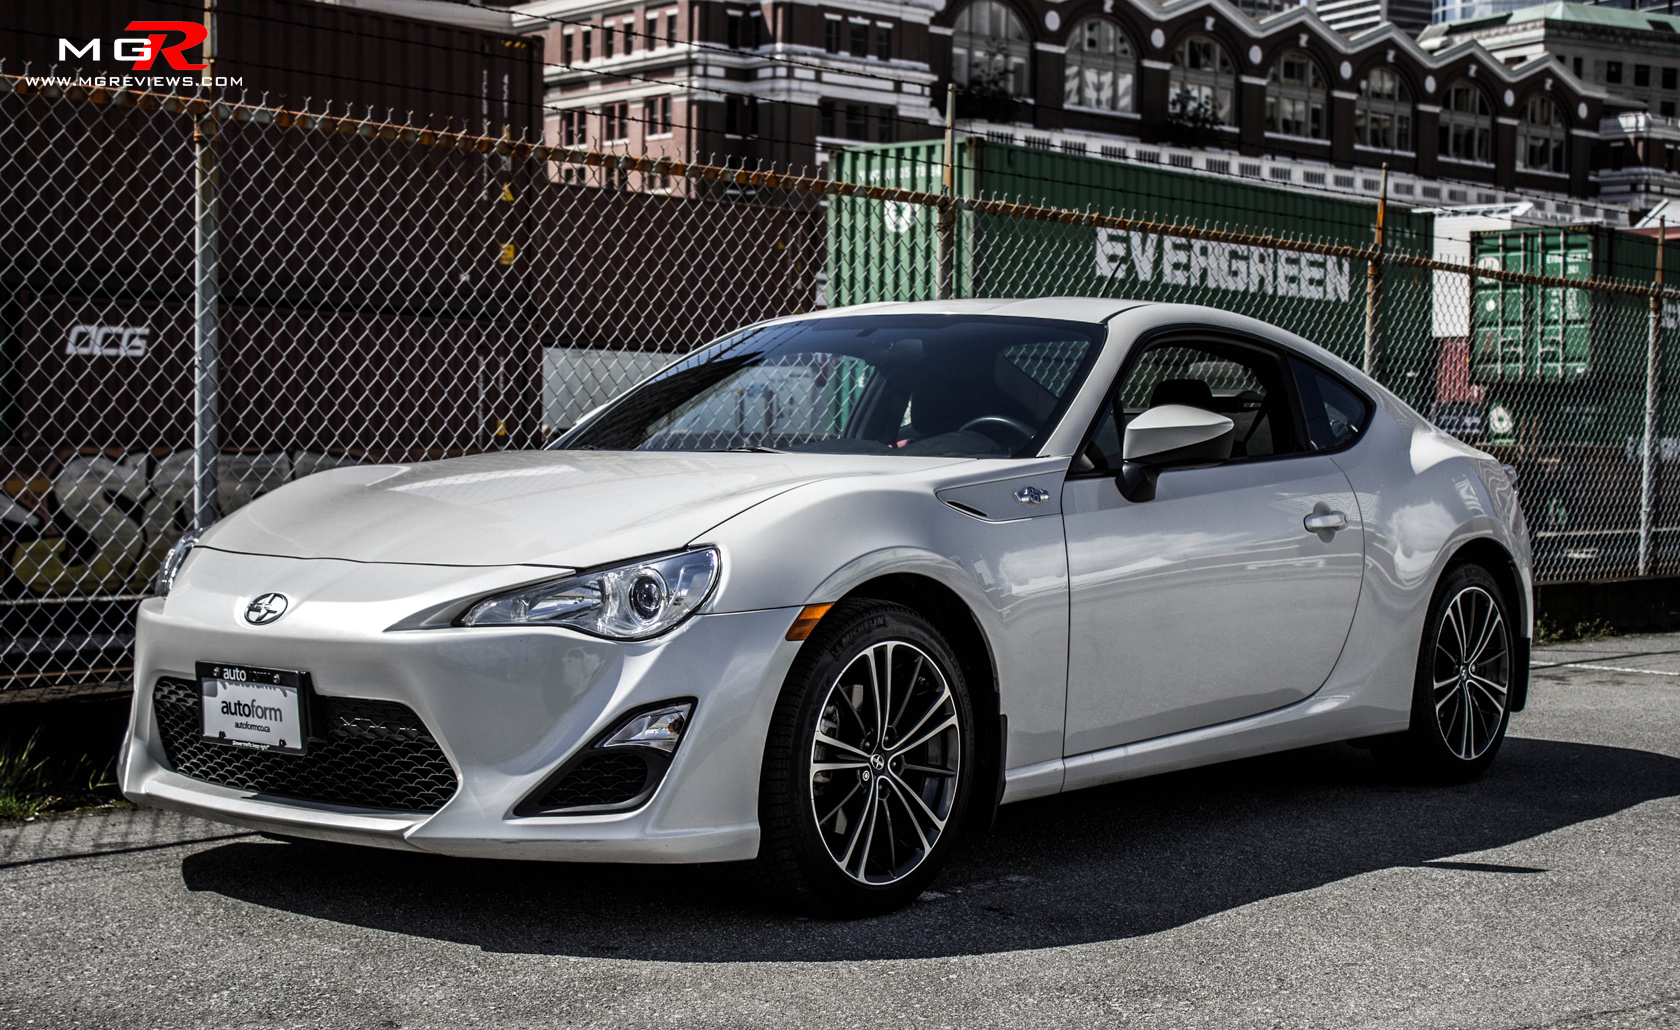 Review 2013 Scion Frs M G Reviews